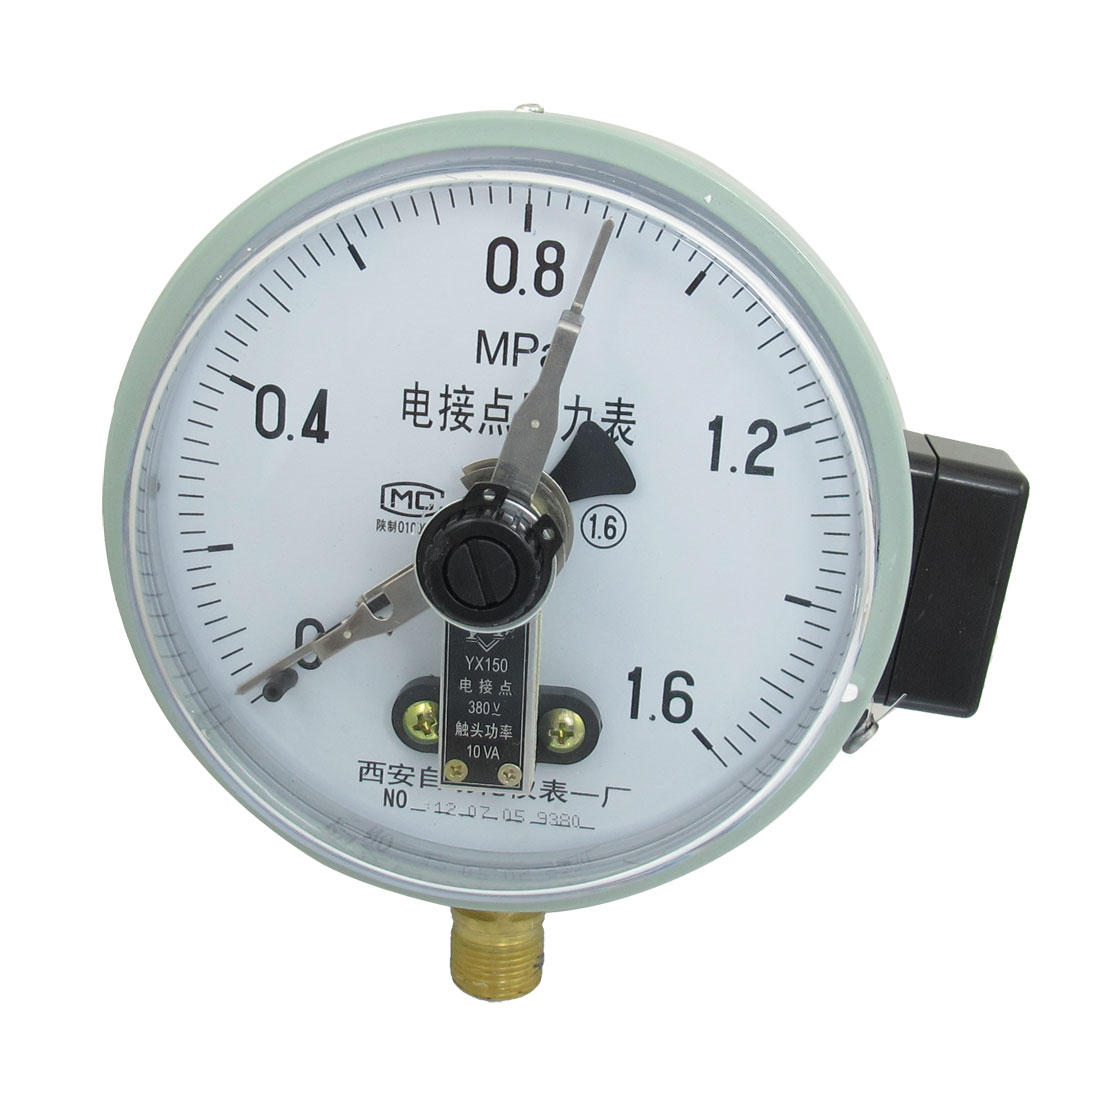 YX-150 0-1.6MPa M20 Thread Dia Electric Contact Pressure Gauge AC 380V 10VA